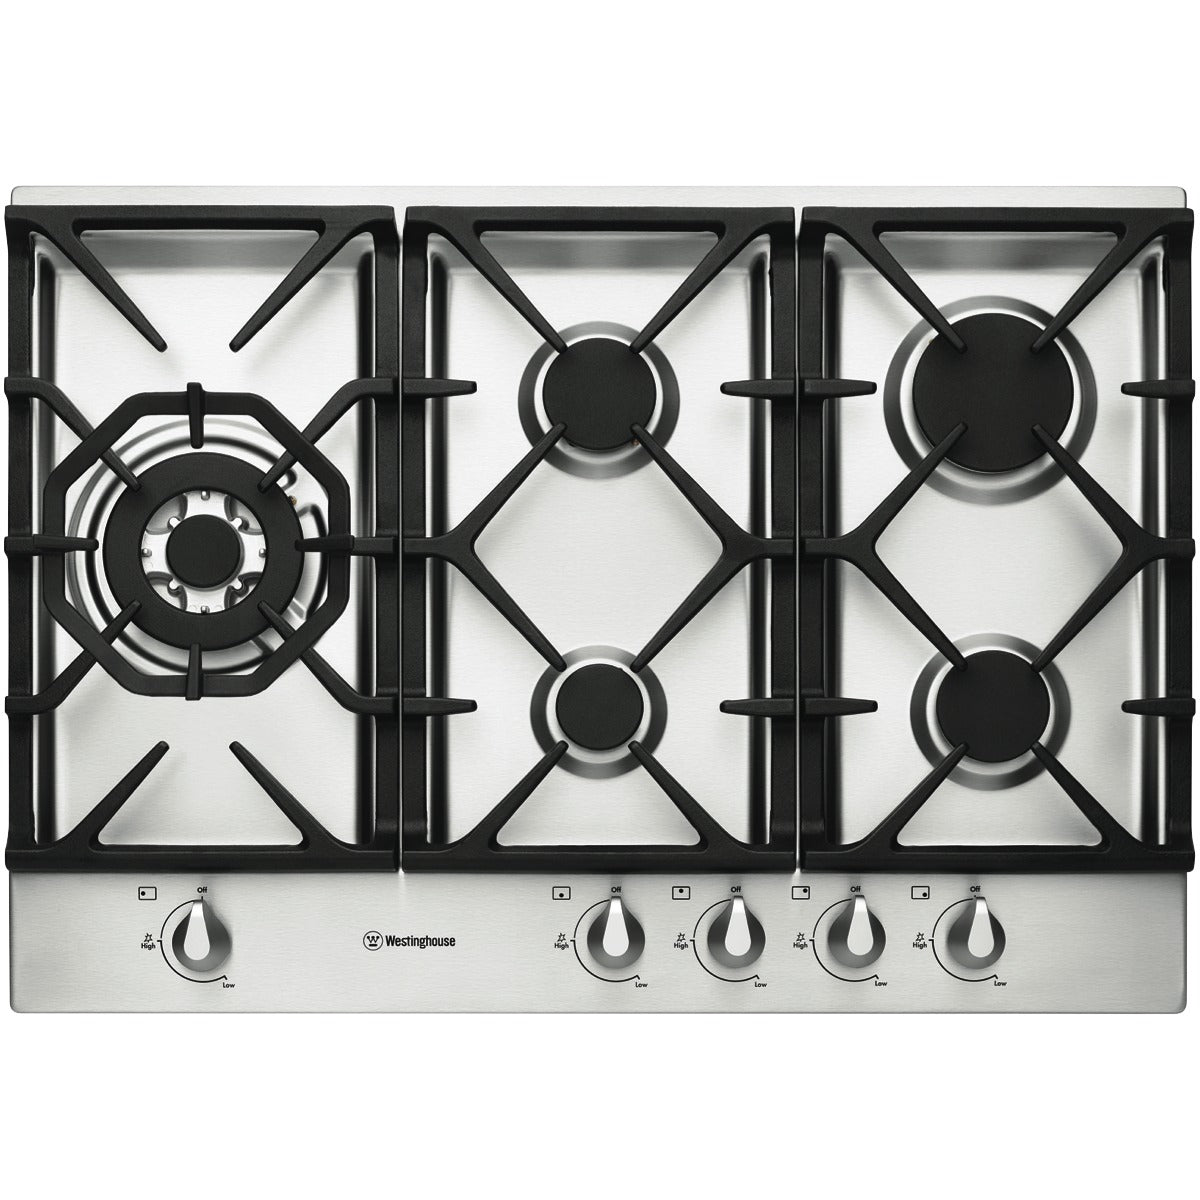 Westinghouse WHG756SA 75cm Stainless Steel Gas Cooktop